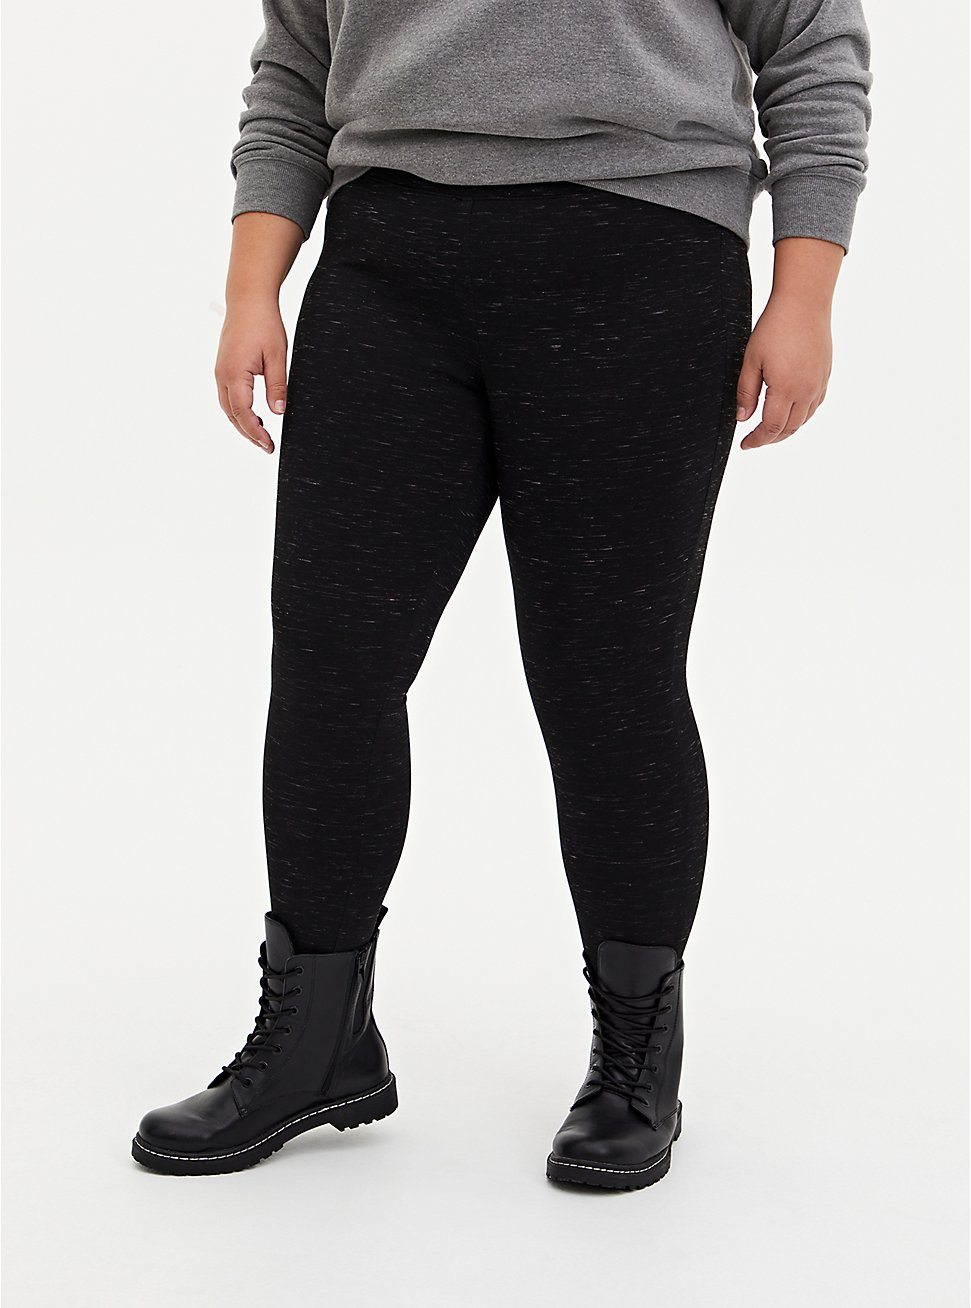 Studio Premium Ponte Slim Fix Pull-On Pixie Pant - Space Dye Black , SPACE DYE, hi-res